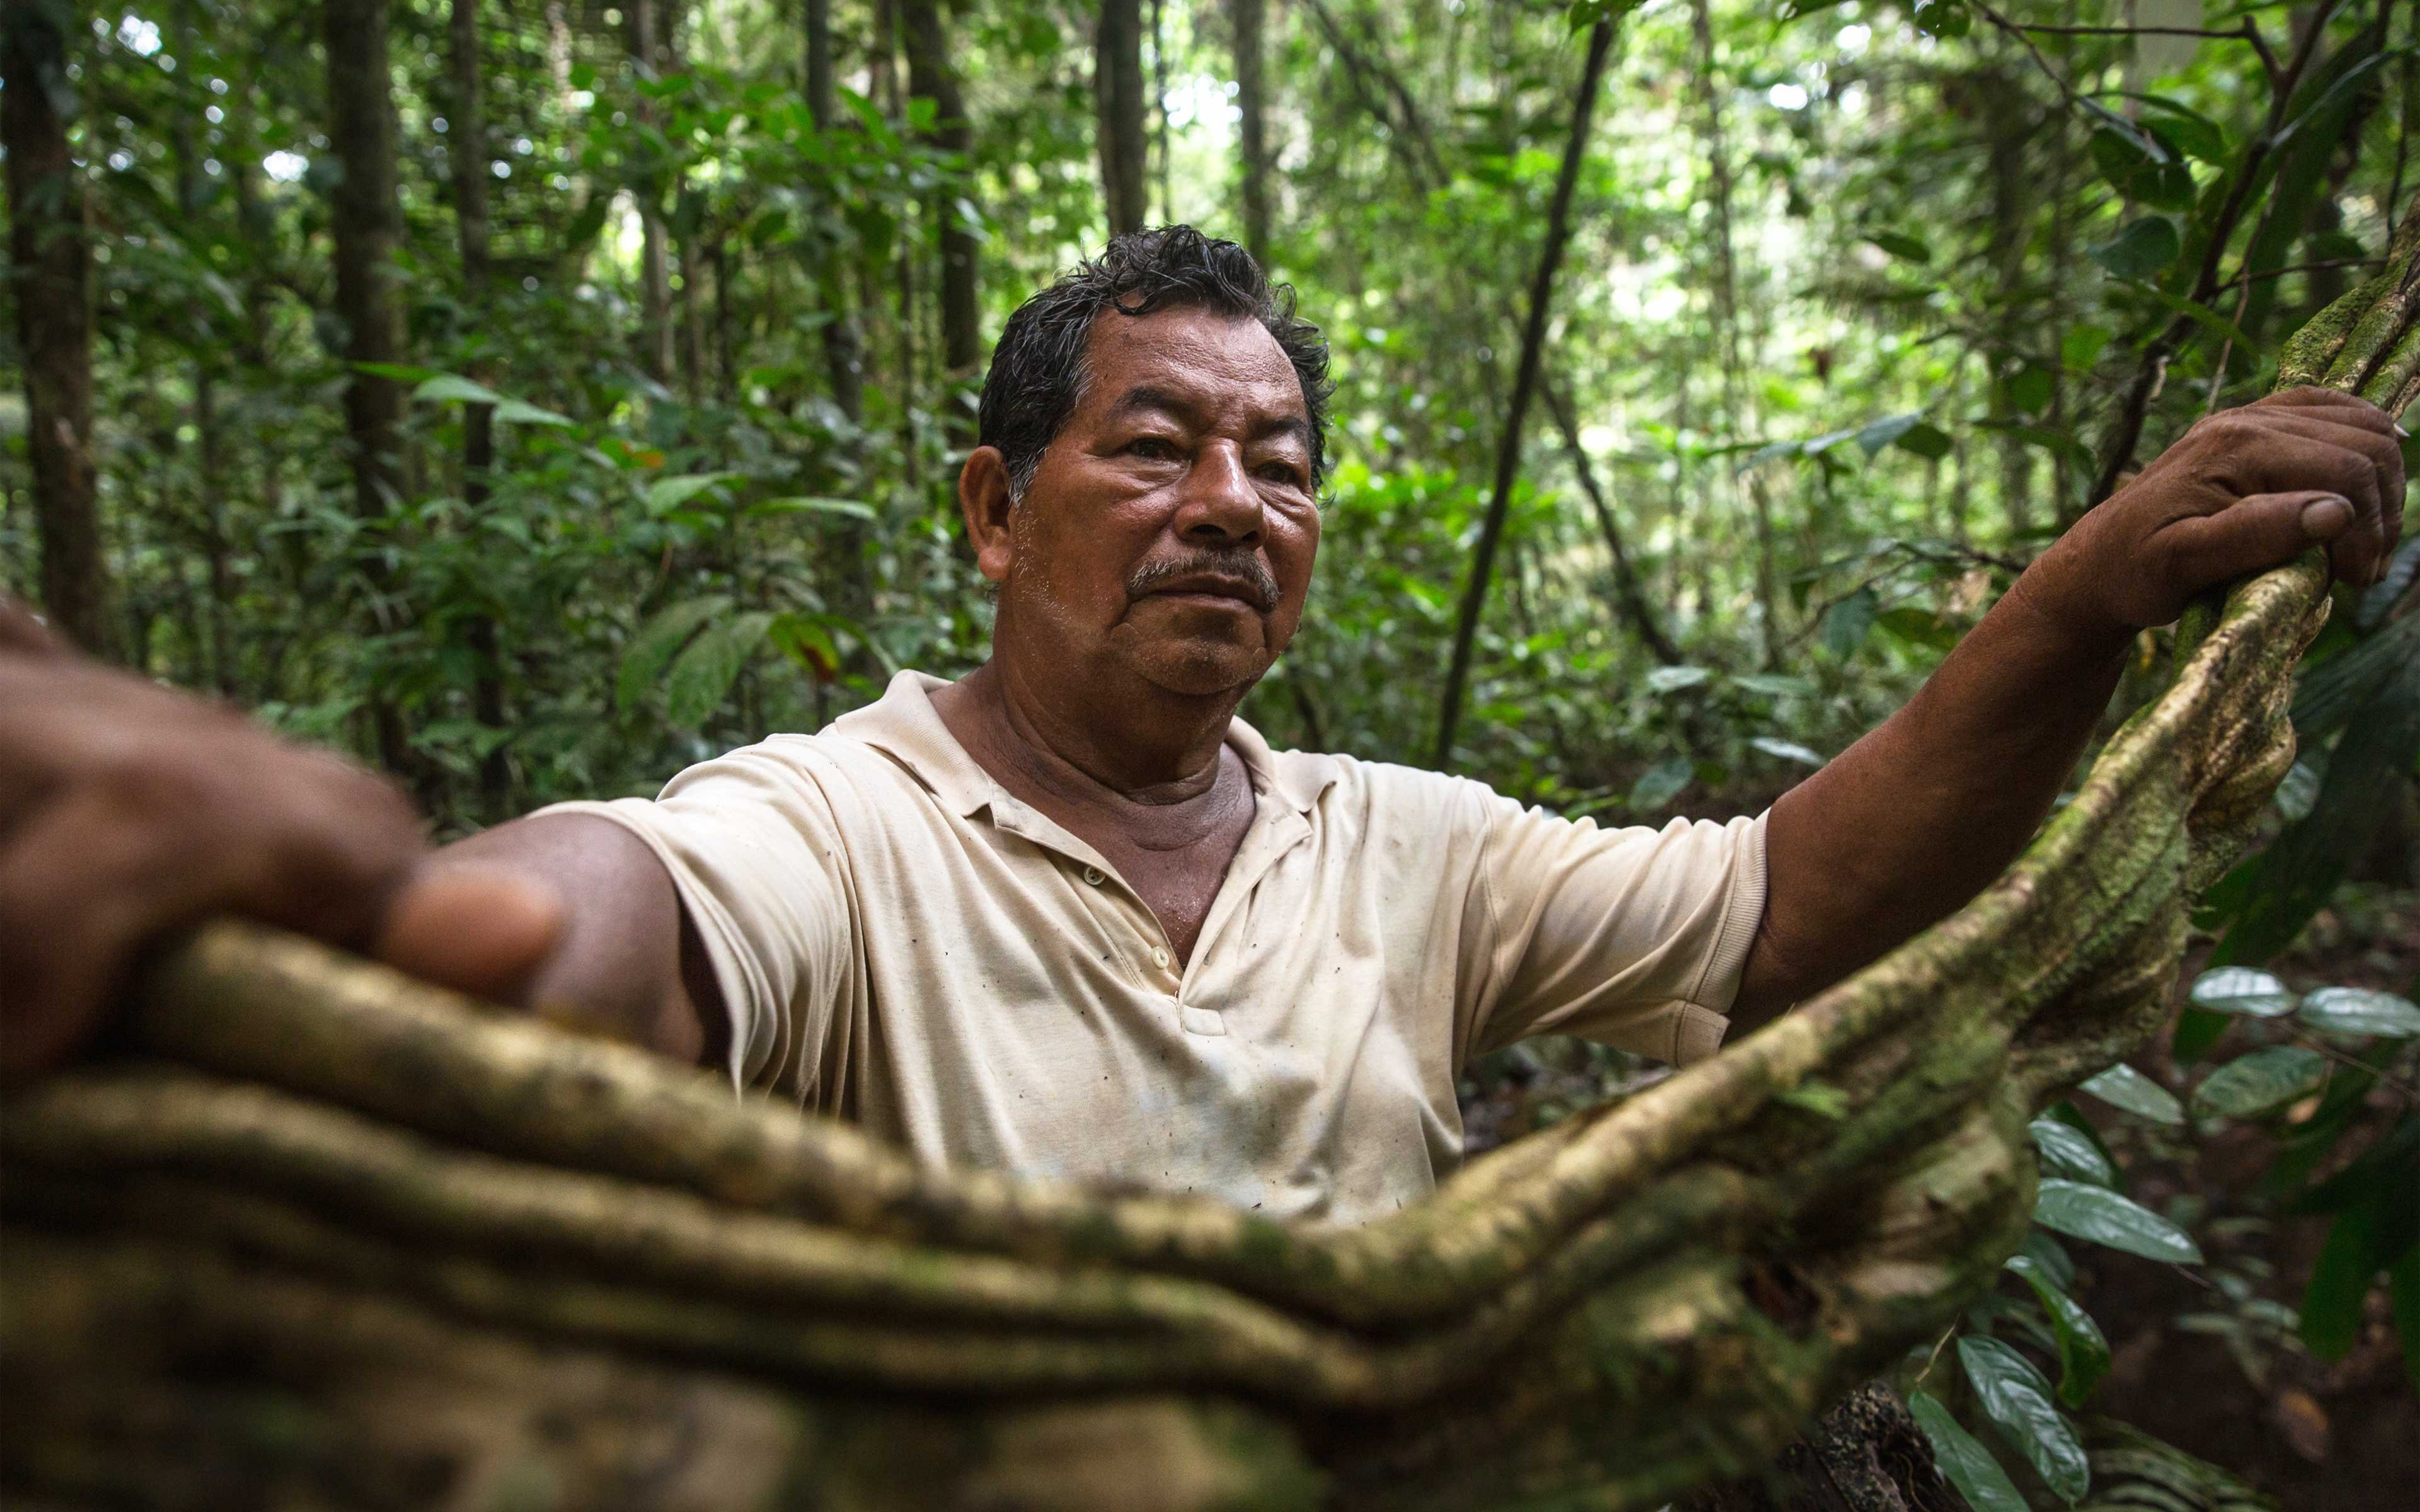 """Ruperto Vasquez, 64, has a 20-hectare farm near Tamshiyacu in Peru's northern Loreto province. He says that Cacao del Peru Norte began buying up land in this area, but that he and a few others refused to sell their land. """"We love nature, and we need our government institutions to help our efforts to preserve it."""""""